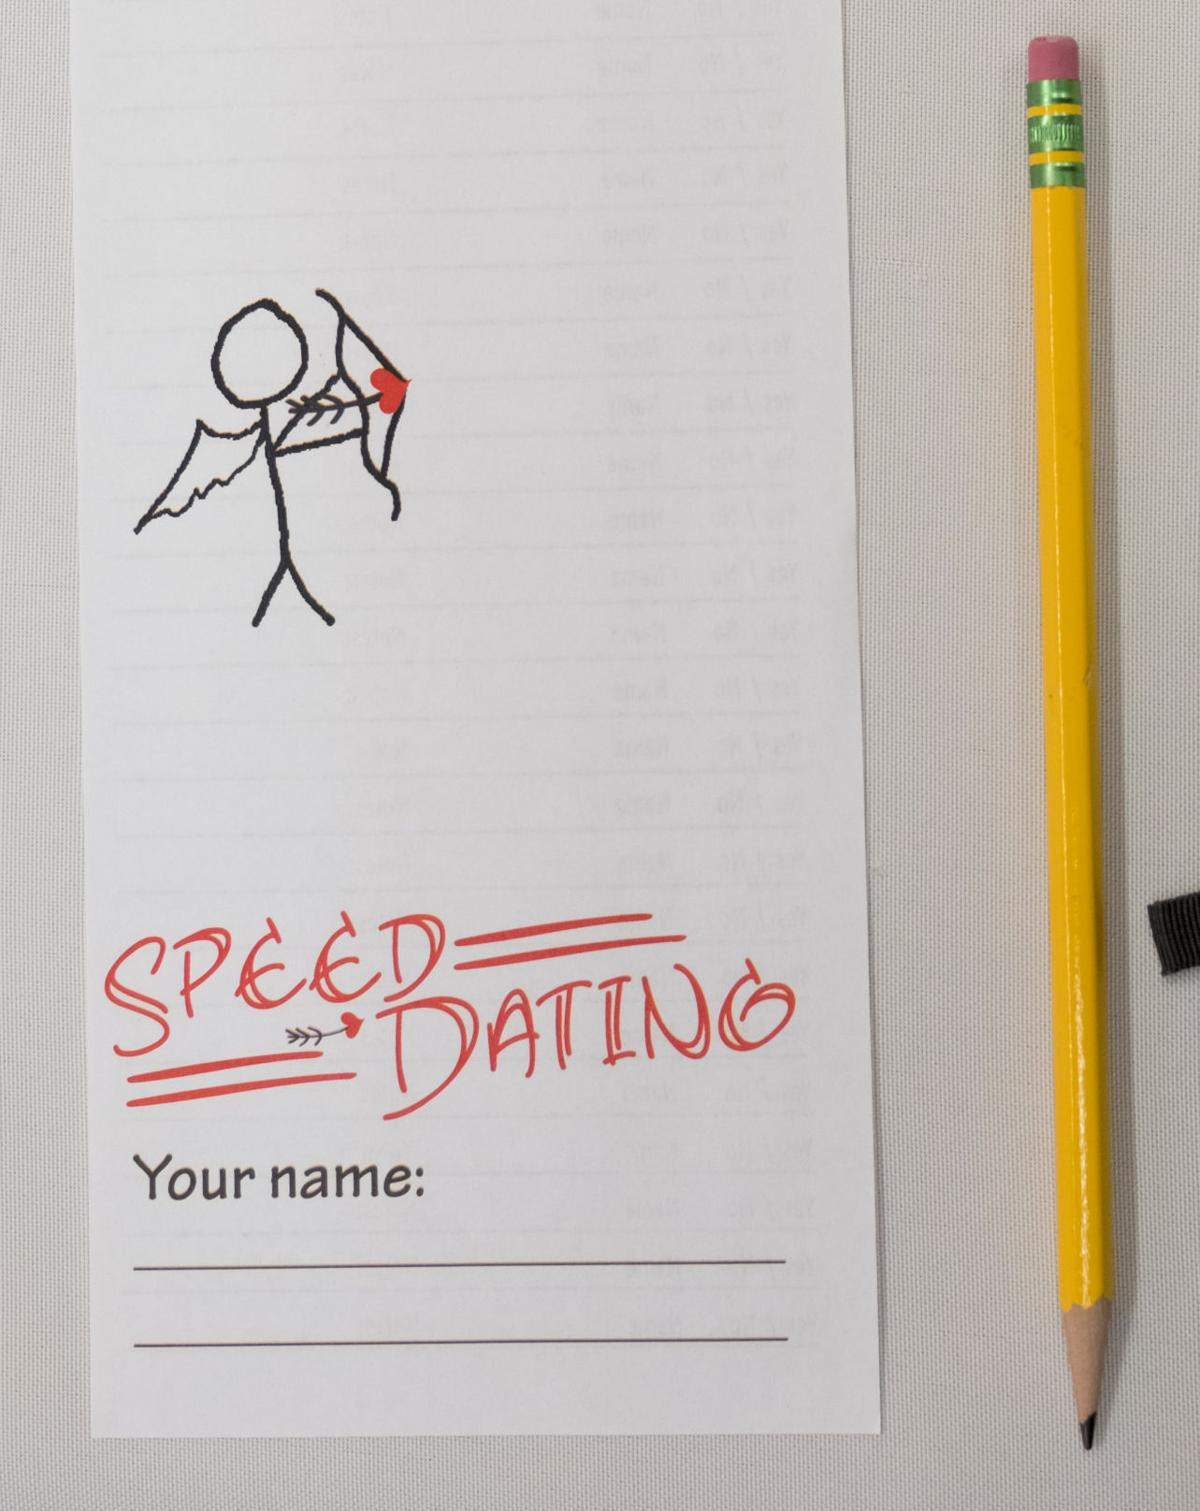 how to make a speed dating event How to make great money hosting speed dating events: a complete start-up guide anyone can follow [naomi mackay, rebekah mackay, elizabeth mackay] on amazoncom free shipping on qualifying offers.